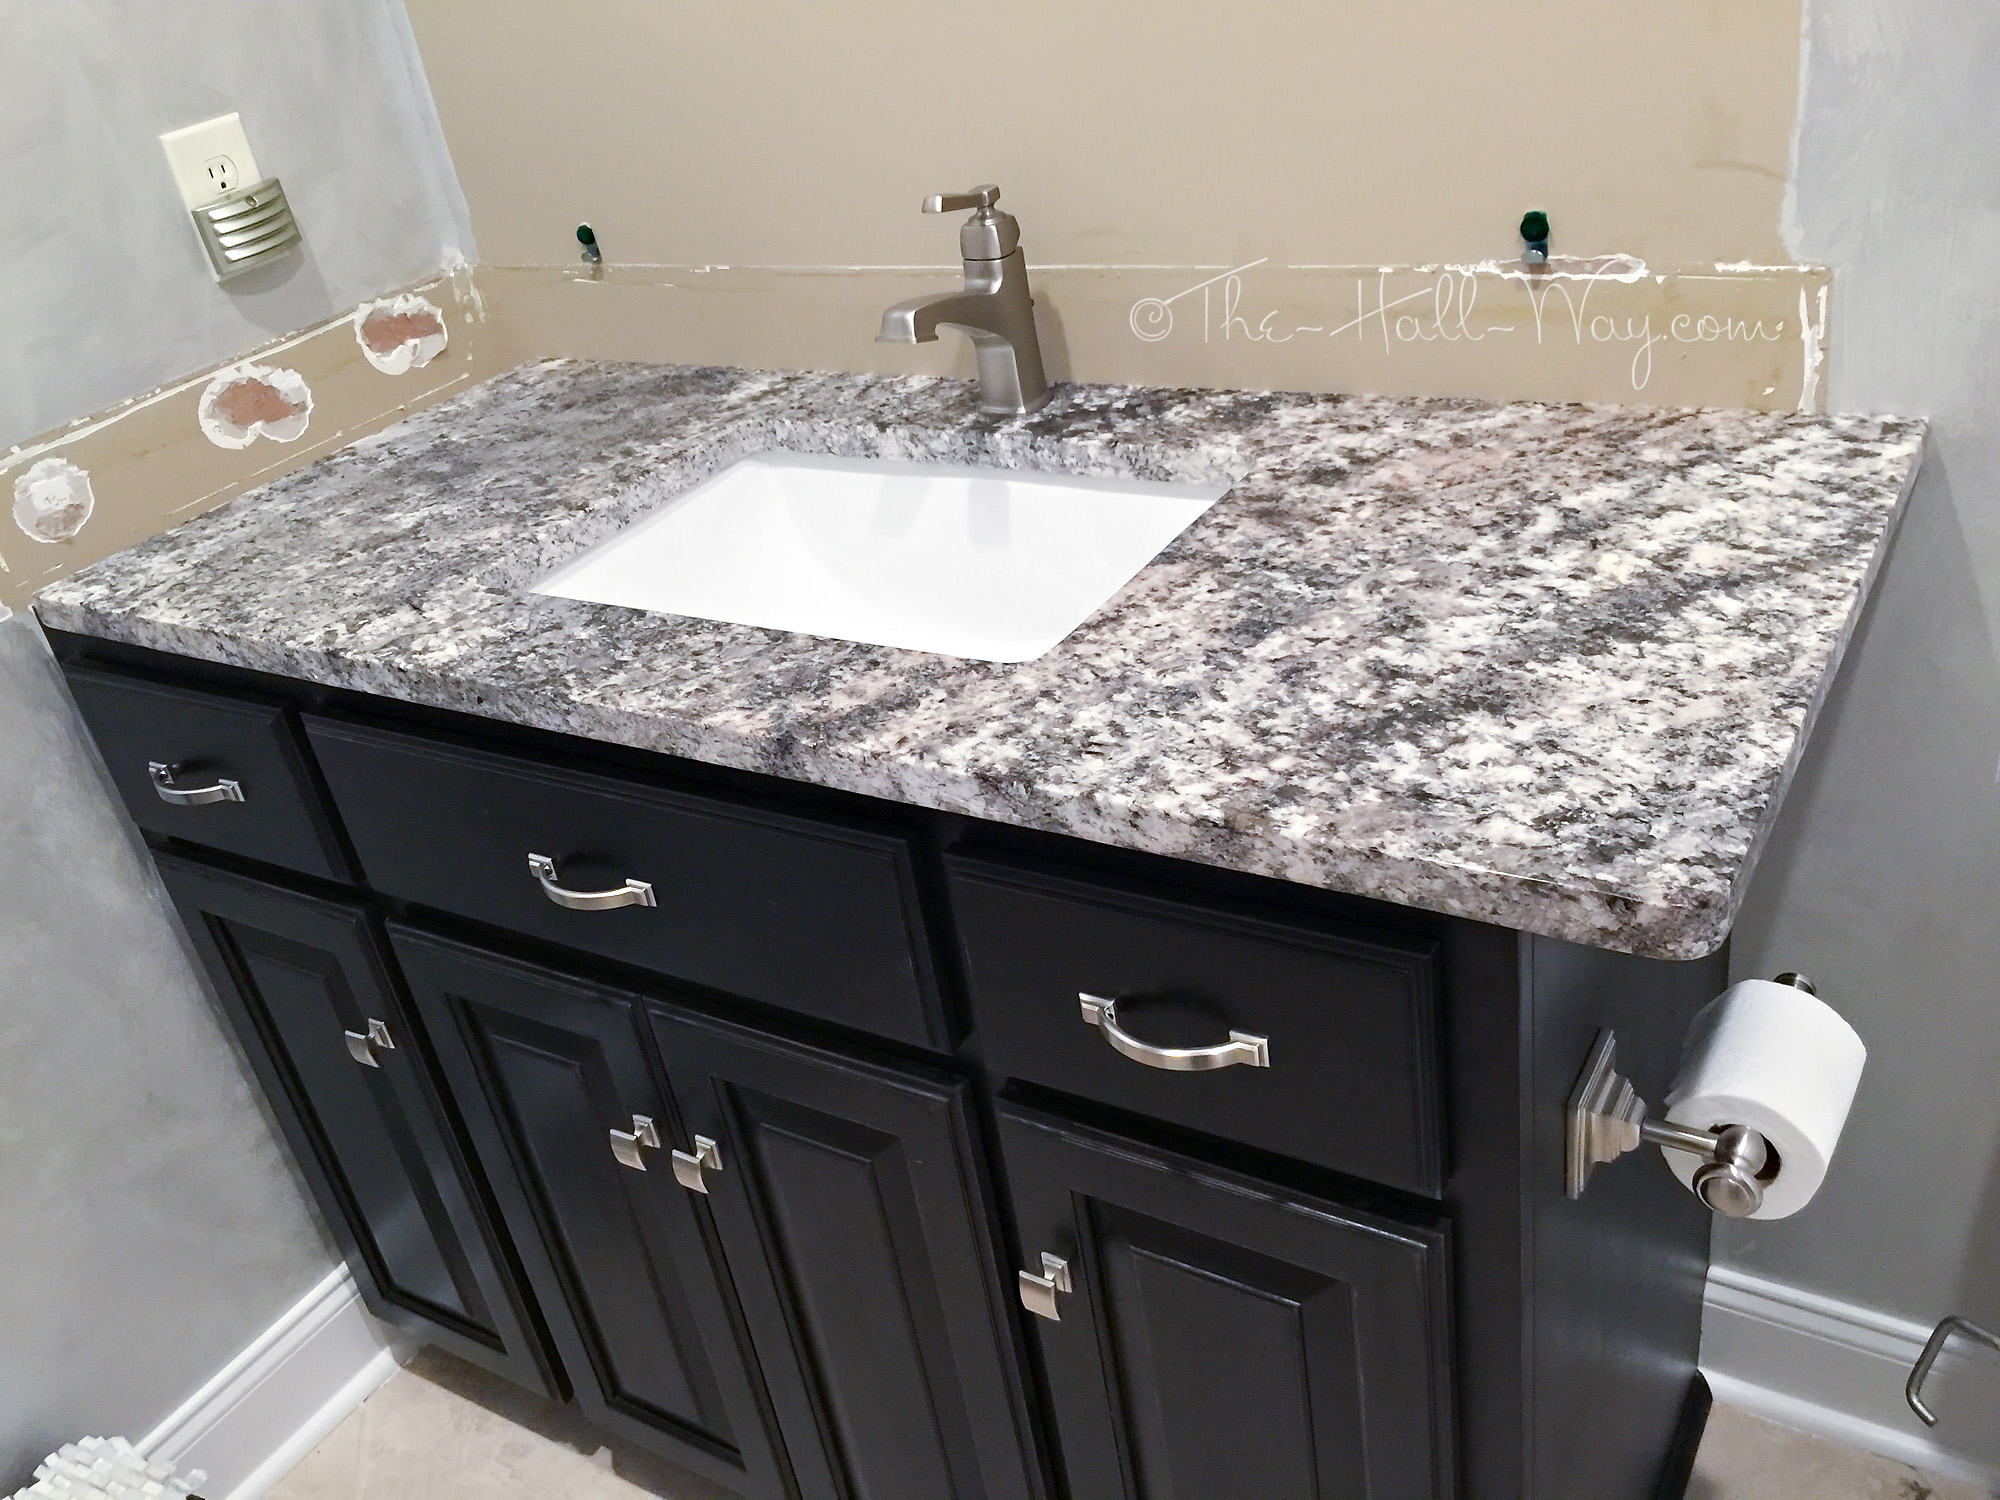 Wonderful Granite White Orion Kitchen With Pergamino And White Torroncino Eclectic  Kitchen Source · Home Theater Bath Part 2 The Hall Way